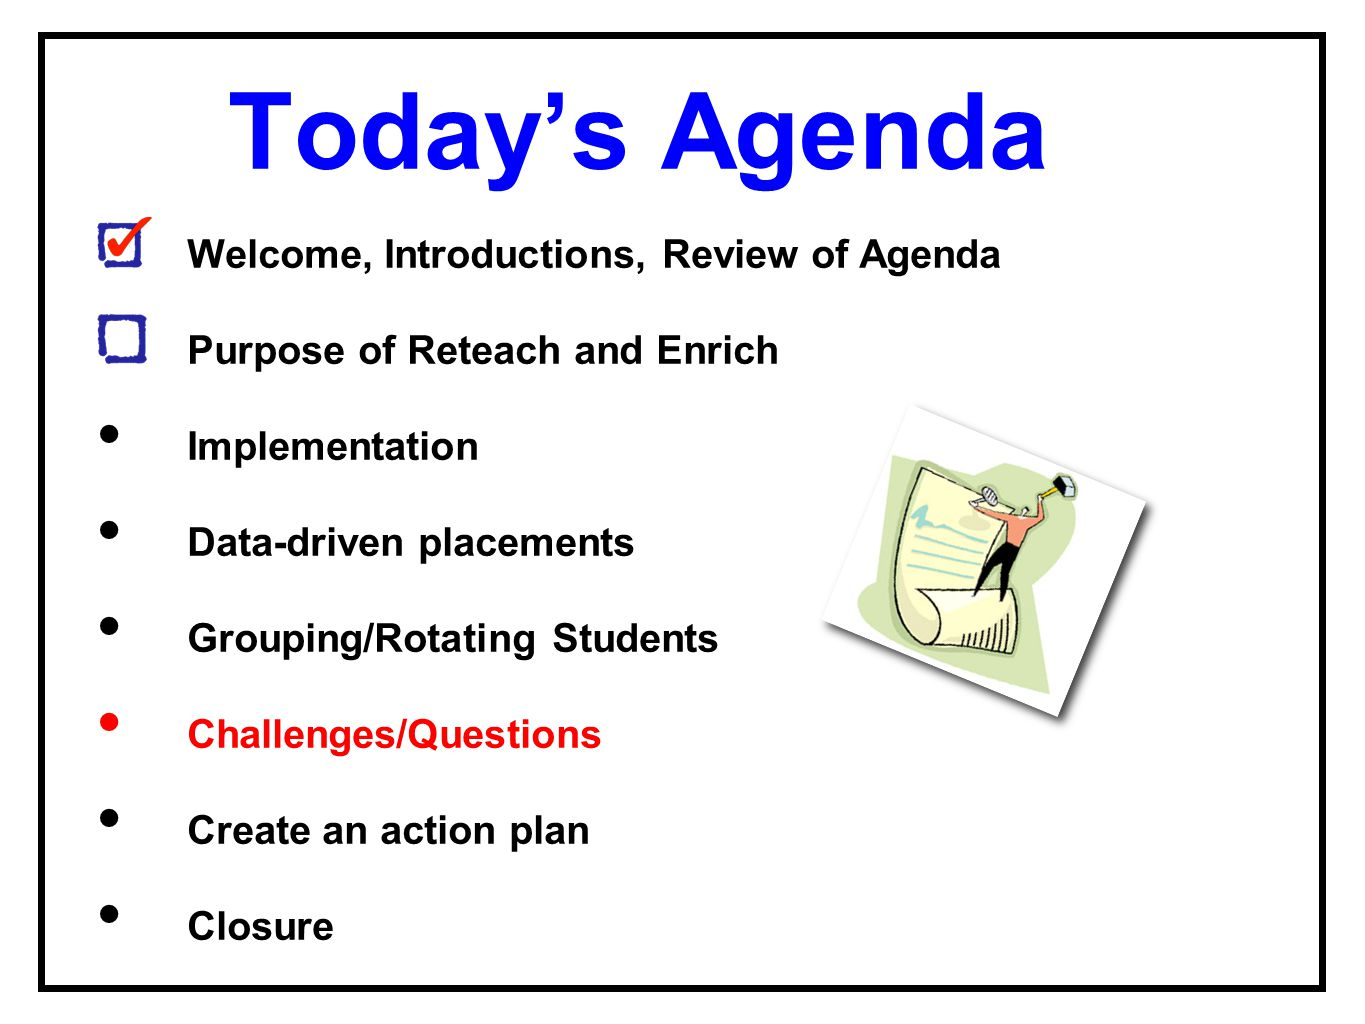 Today's Agenda W elcome, Introductions, Review of Agenda P urpose of Reteach and Enrich Implementation Data-driven placements Grouping/Rotating Studen